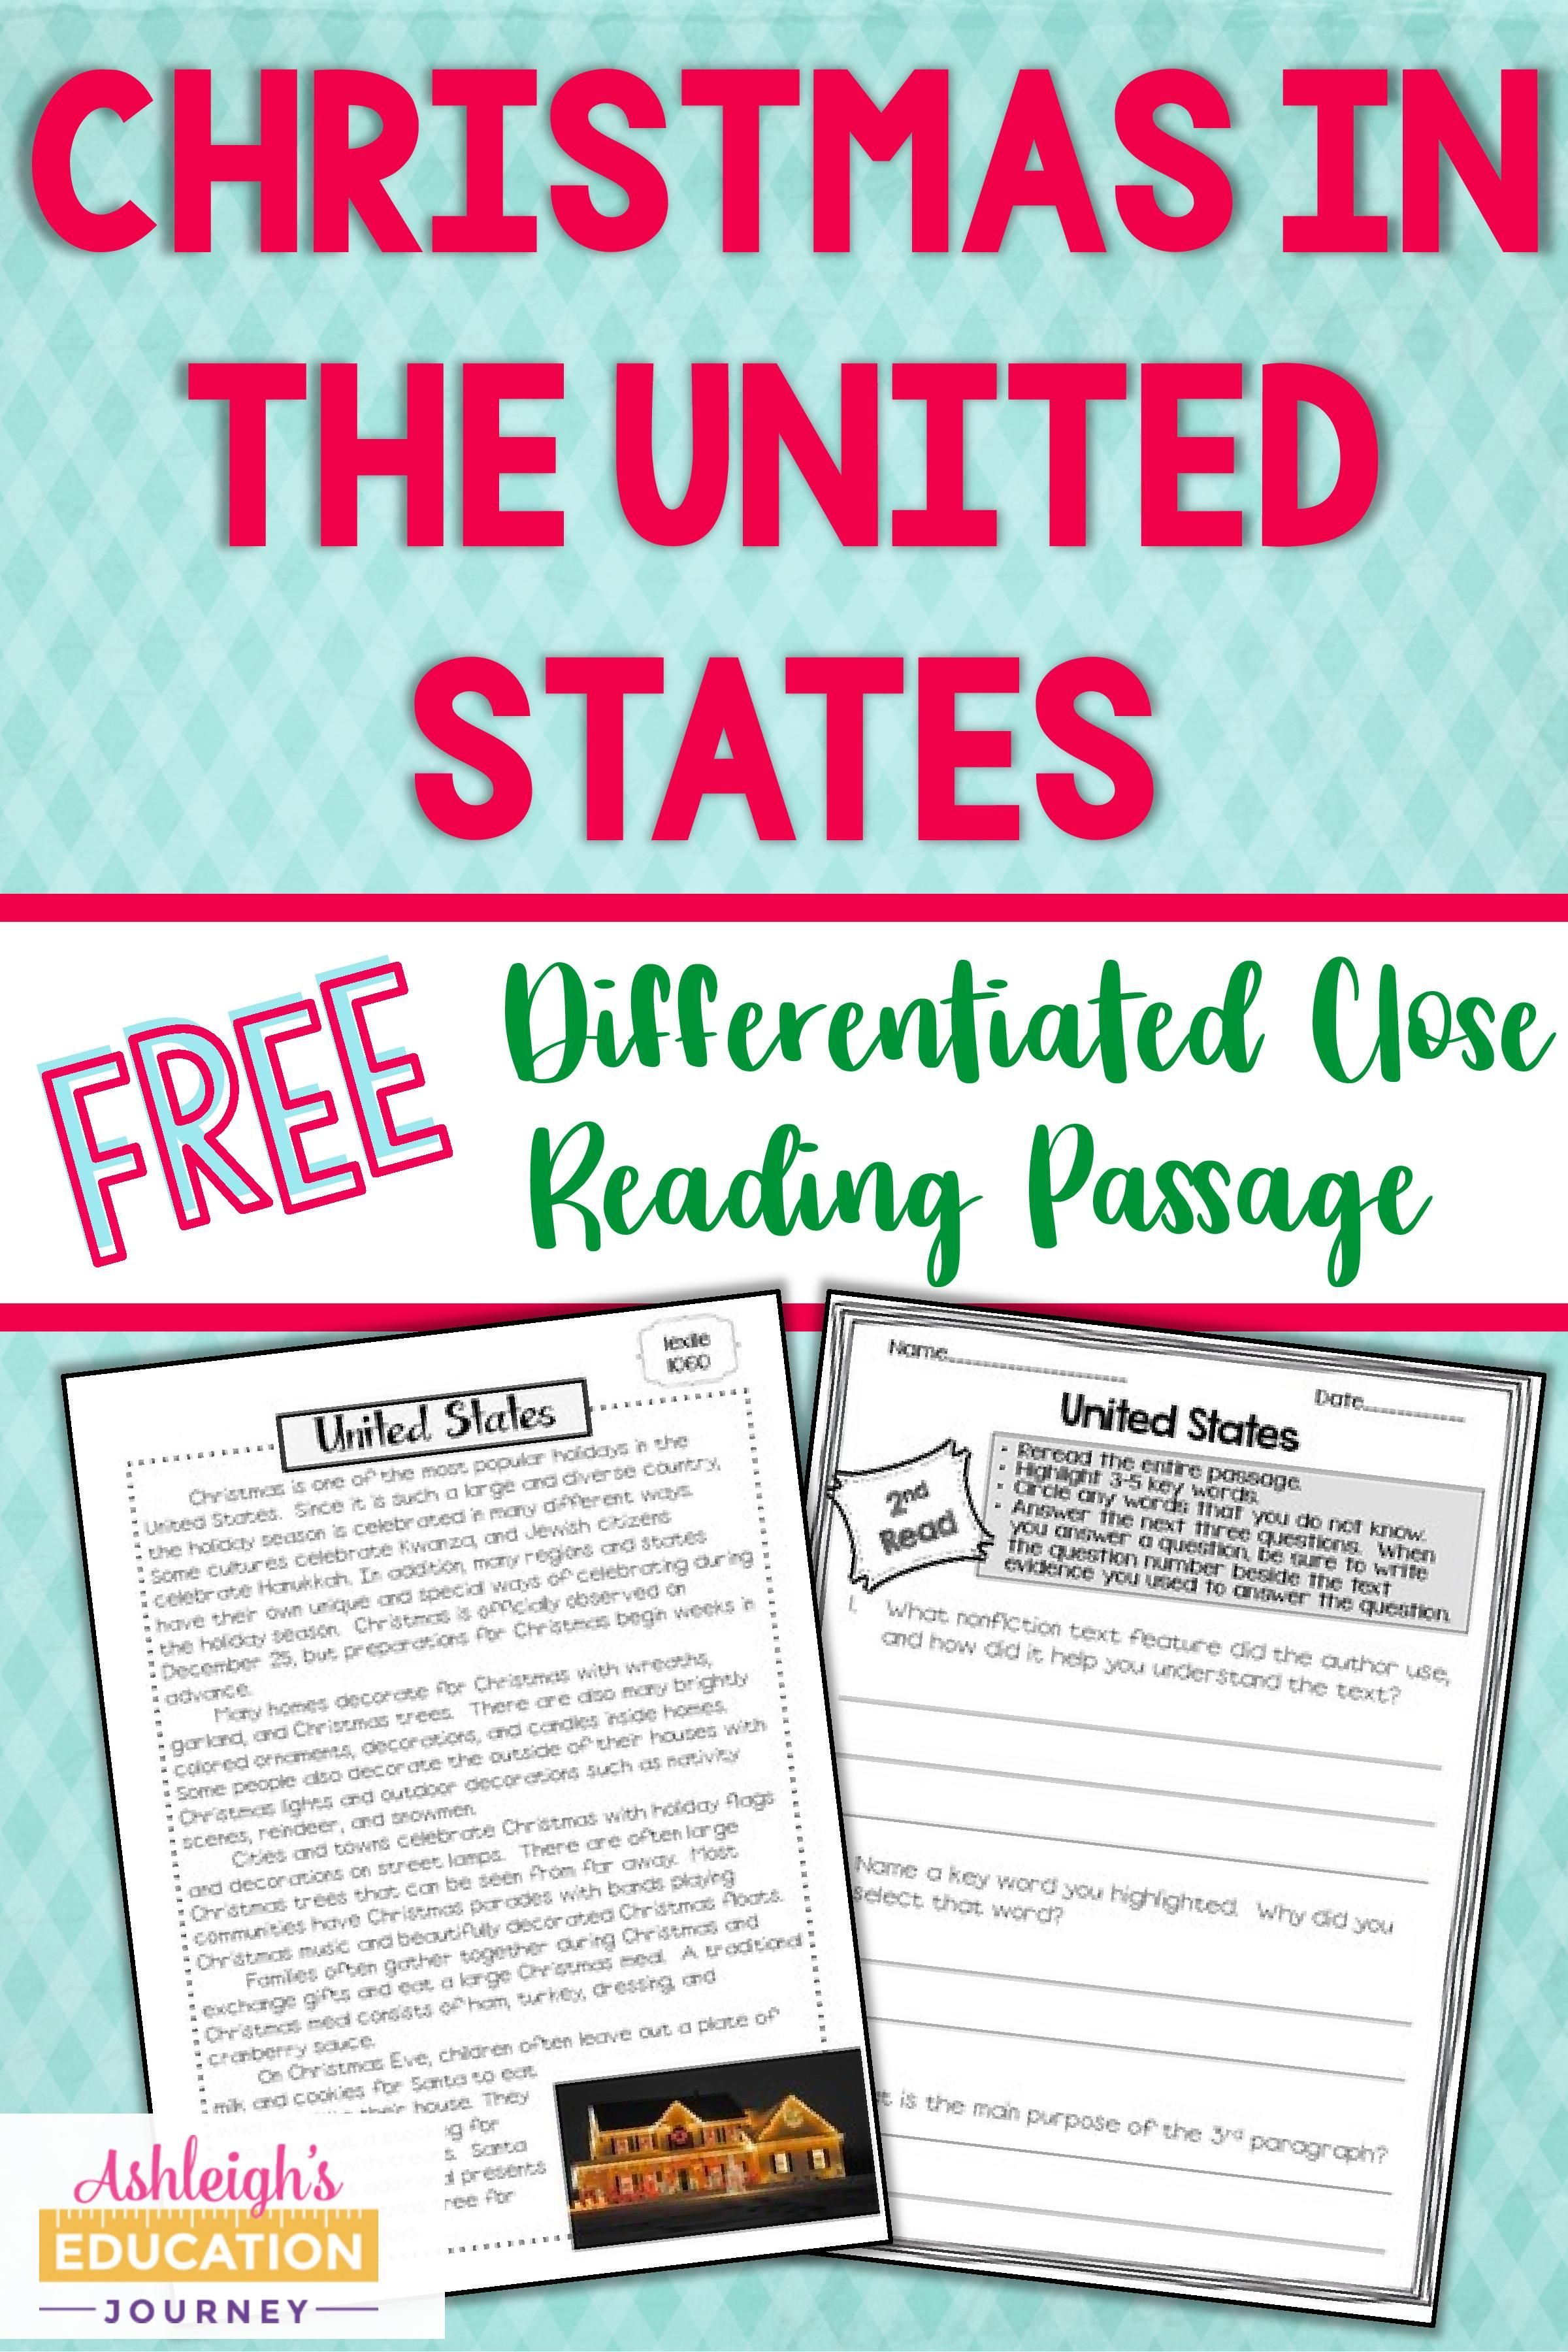 Holidays Around The World Ashleigh S Education Journey Holiday Reading Passages Reading Passages Free Reading Passages [ 3600 x 2400 Pixel ]